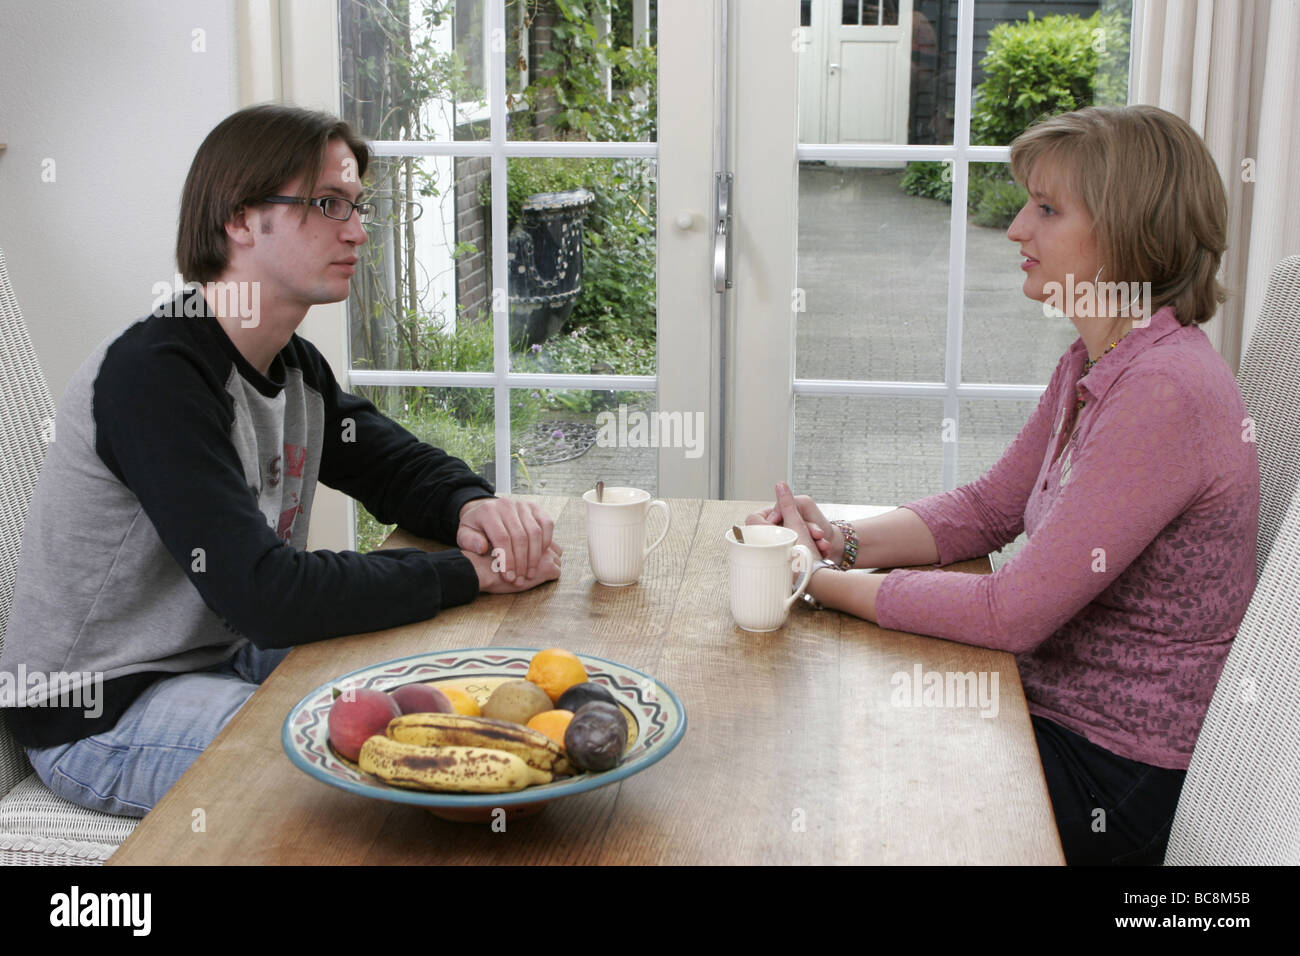 Young couple with cup of coffee sit at table having words - SerieCVS417416 Stock Photo